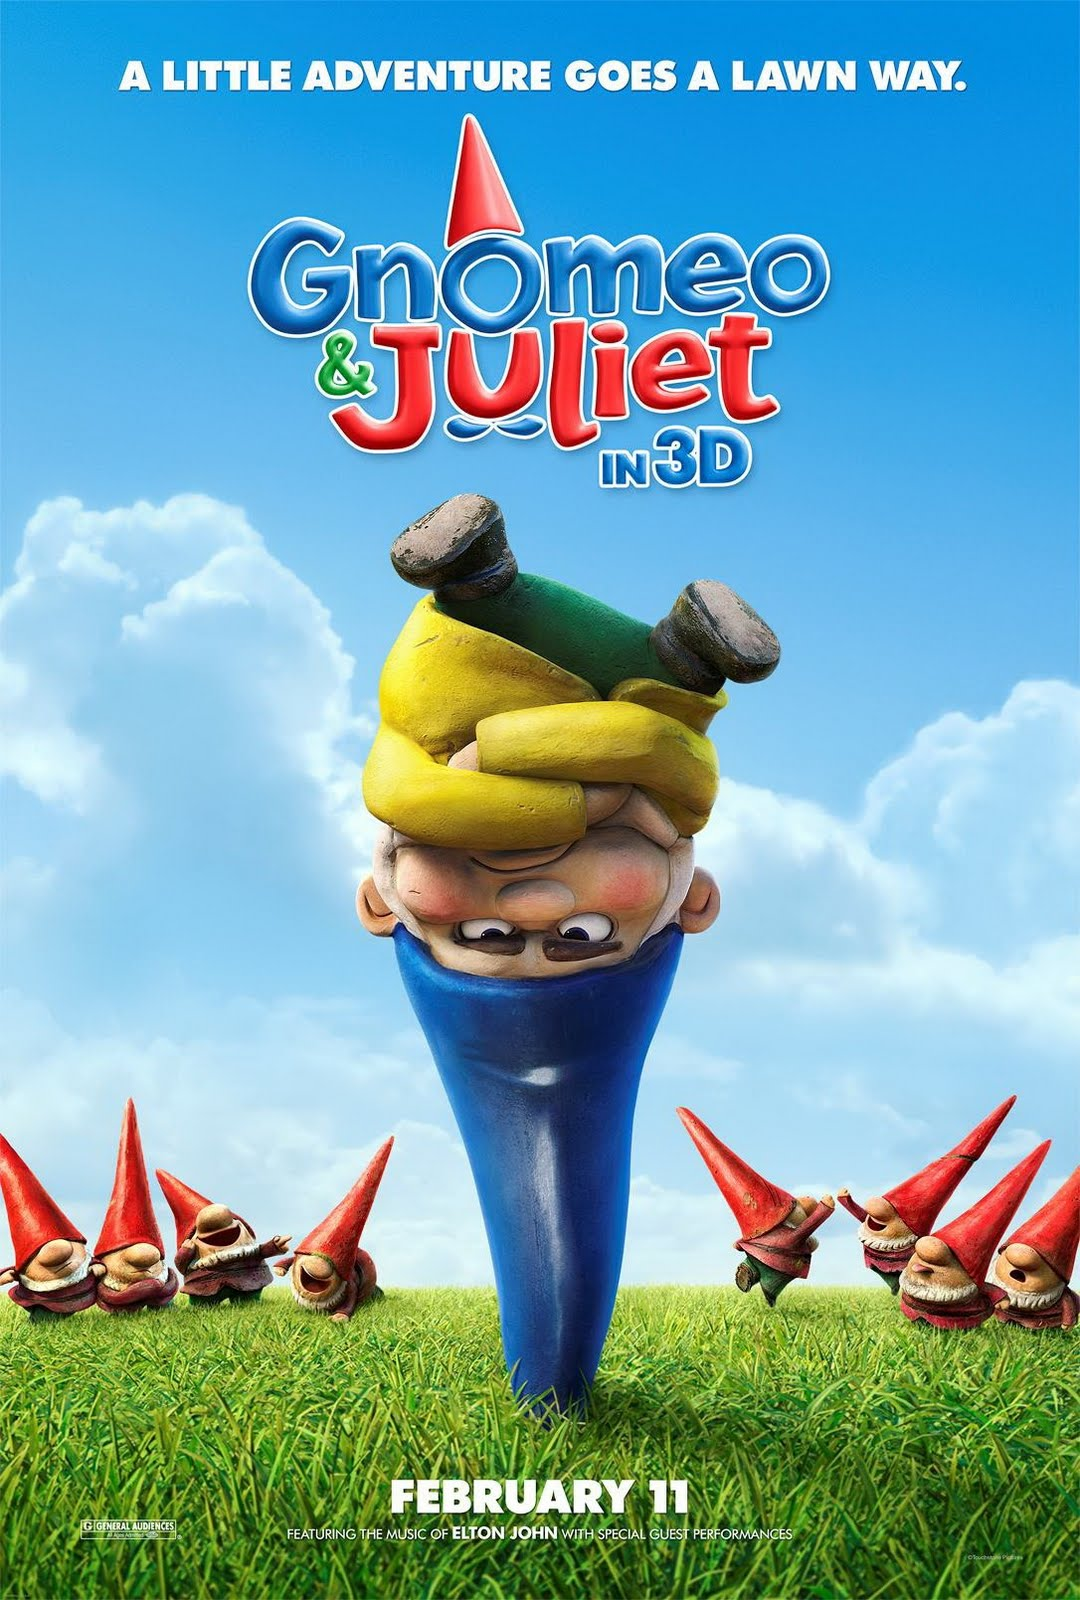 Gnomeo And Juliet Review